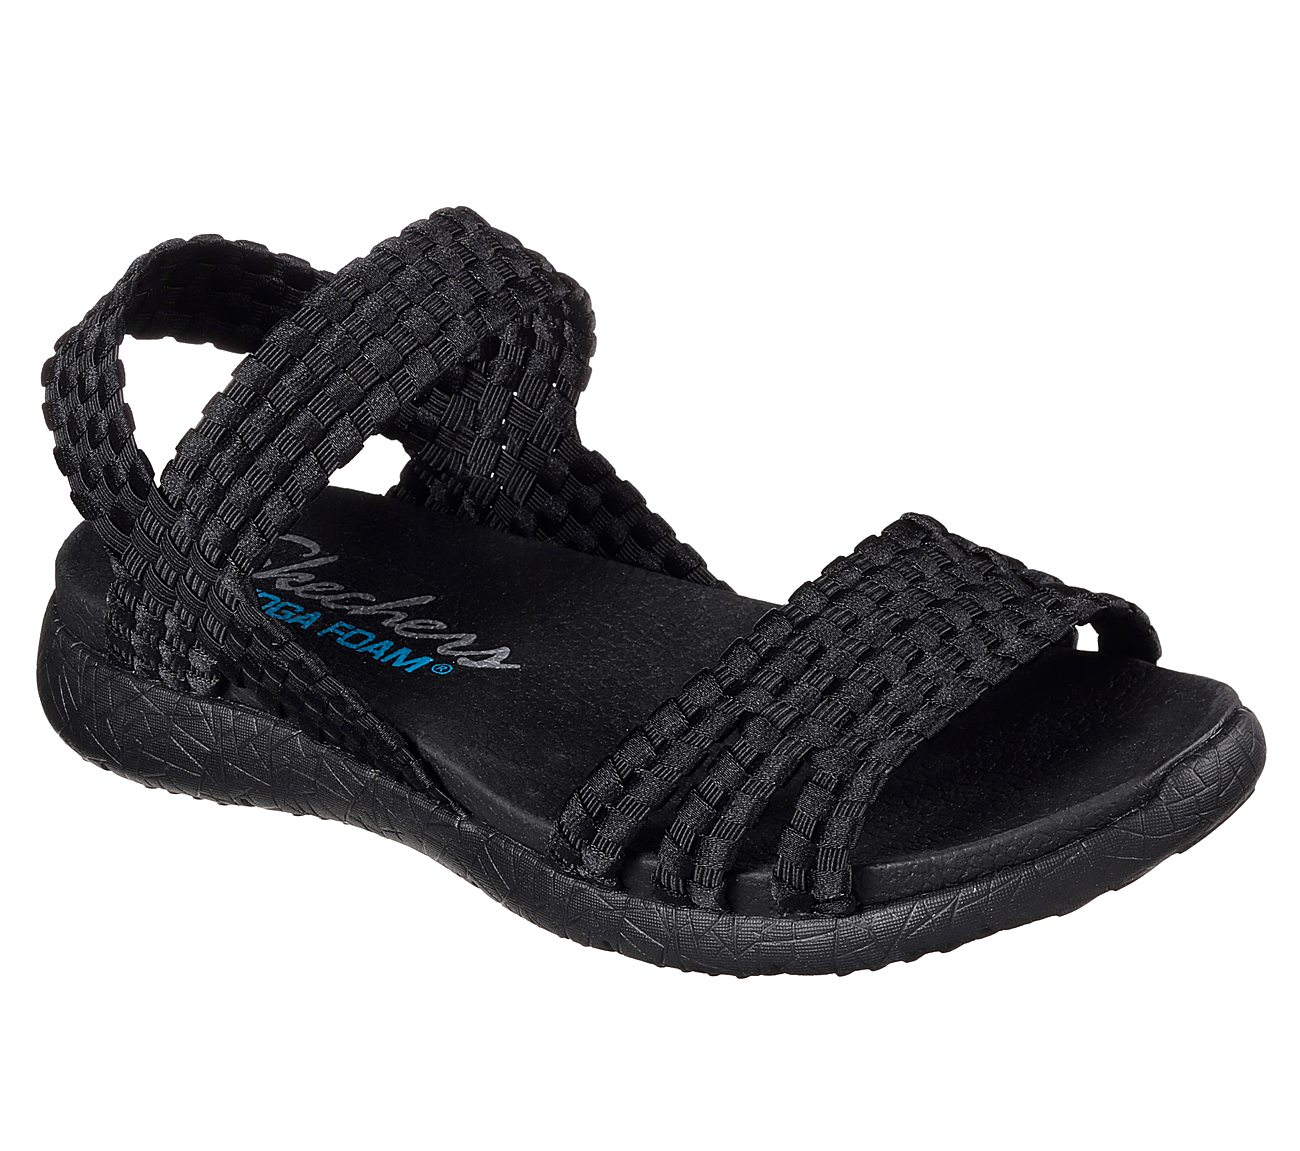 54d854e92d77 Buy SKECHERS Microburst - Looks Good Cali Shoes only  45.00